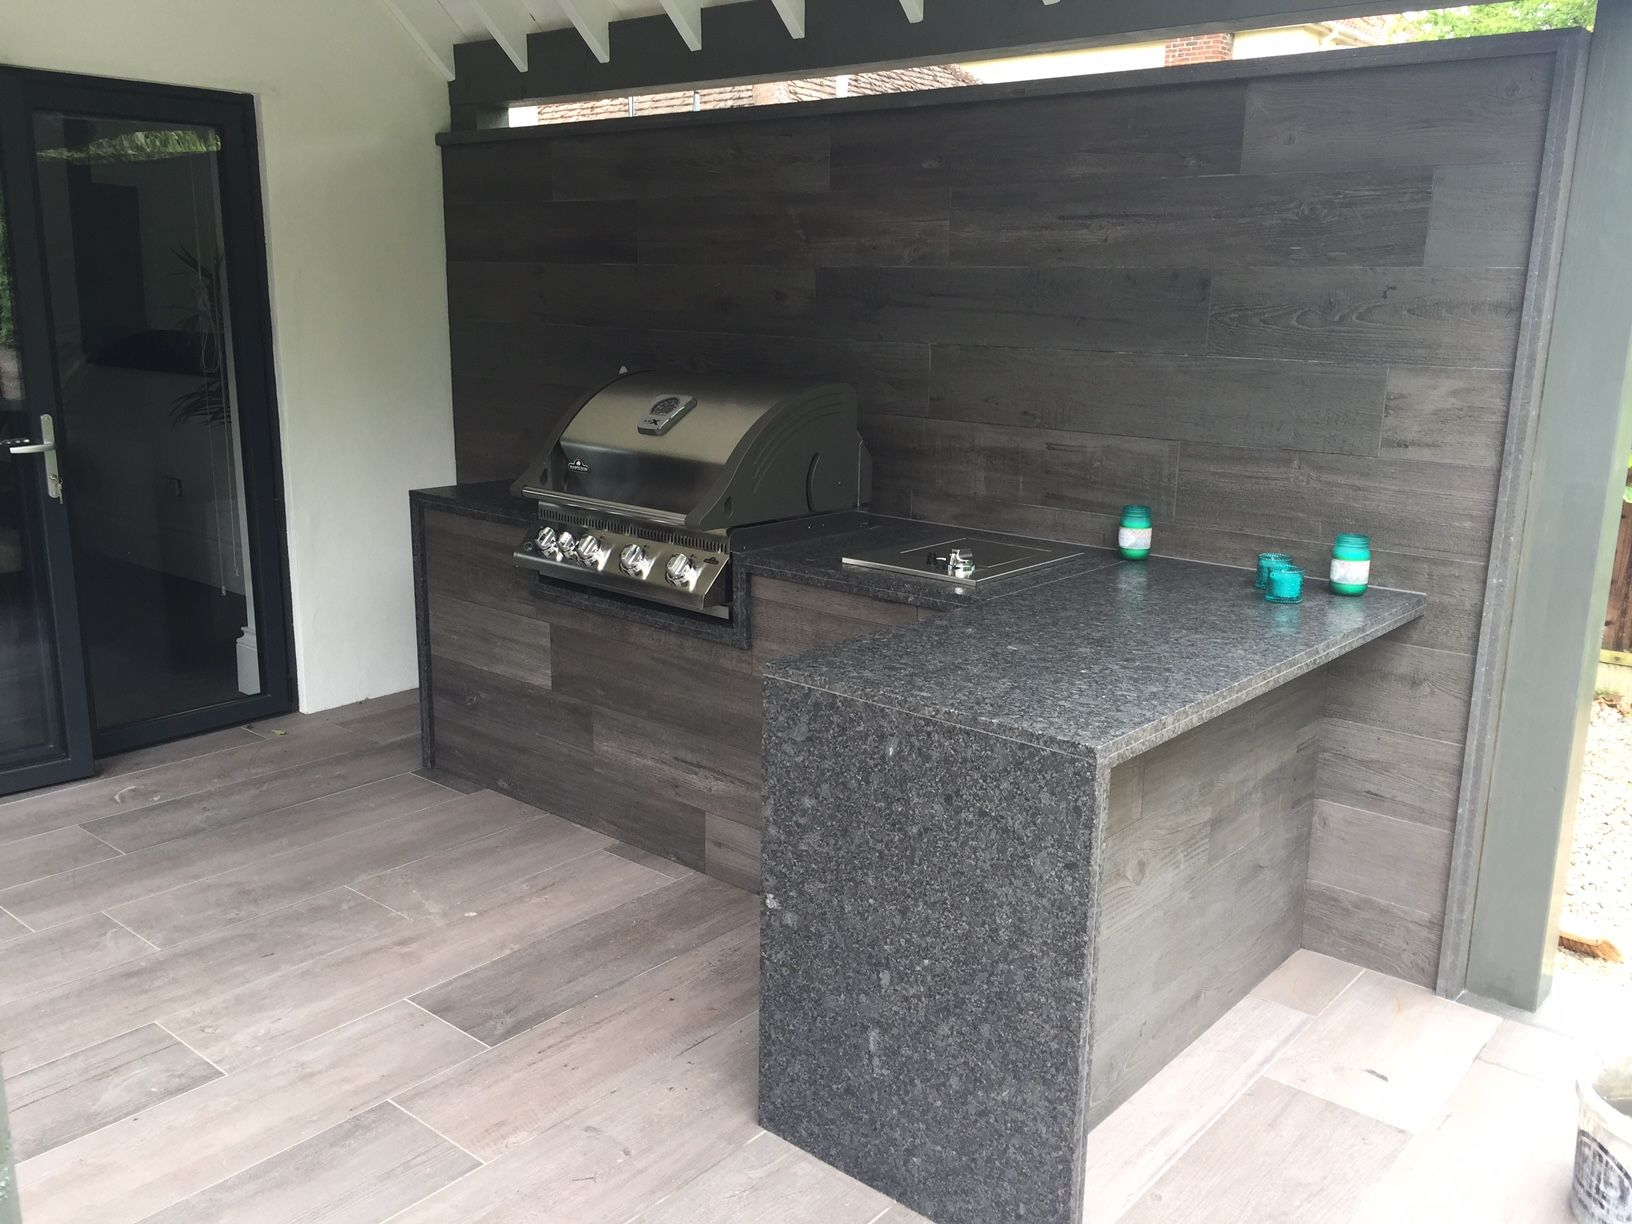 Beau Outdoor Kitchen Created Using Valverdi Wood Effect Porcelain Tiles # Outdoorkitchen #woodeffecttiles #woodeffectpaving